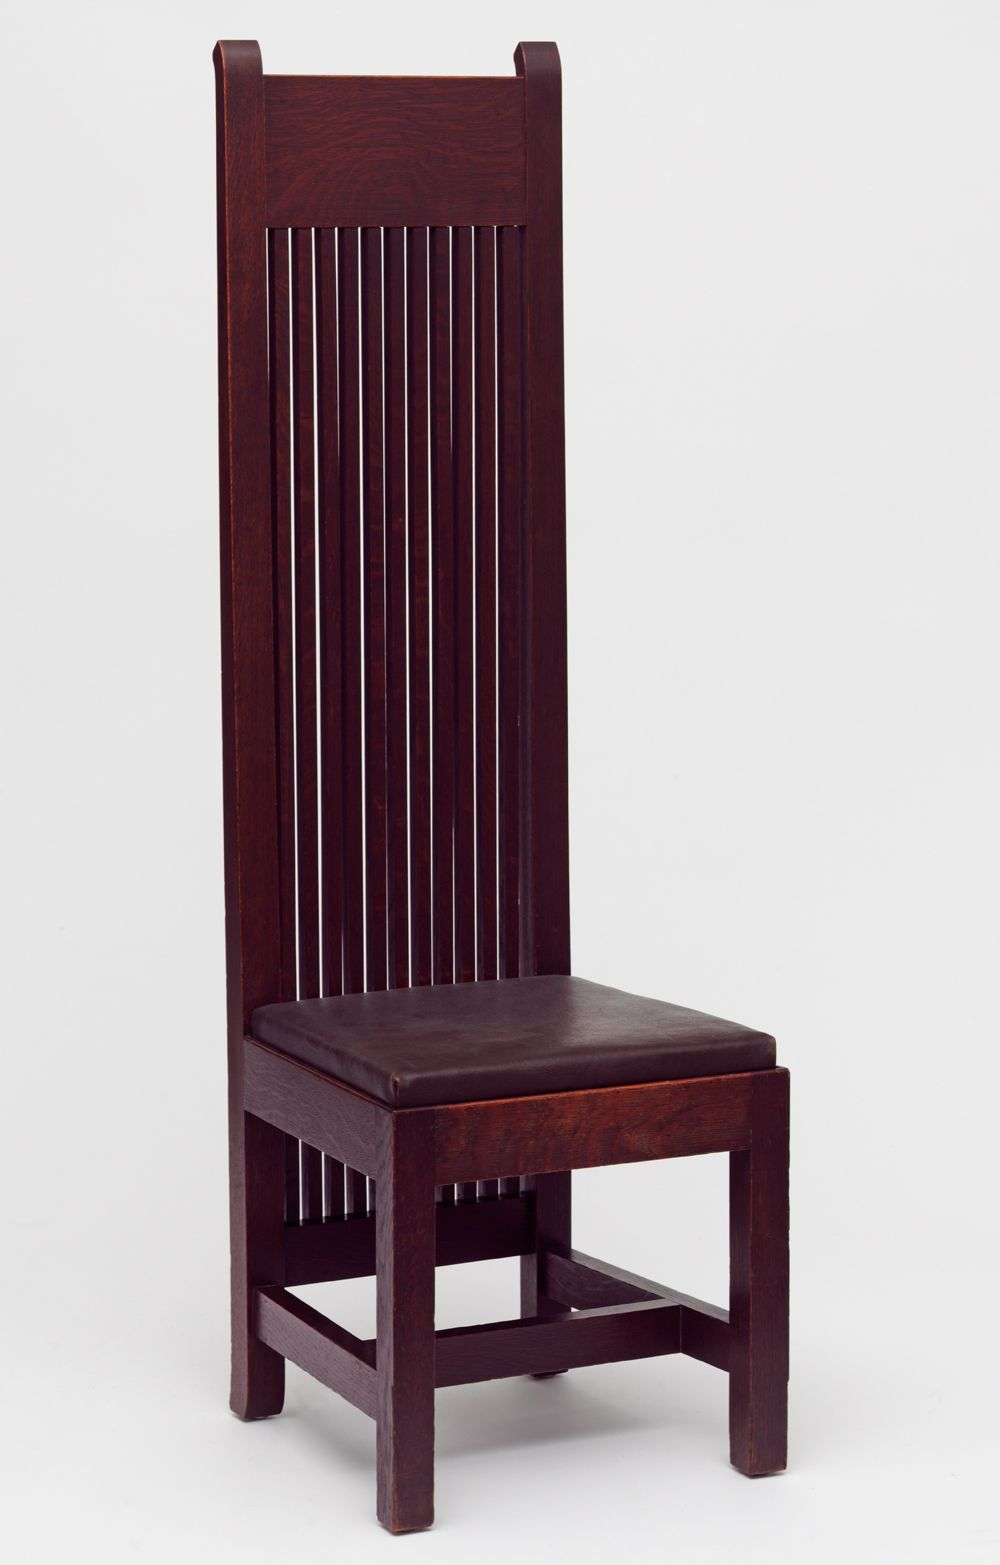 U.S. Arts and Crafts Dining Chair, 1902 // Designer: Frank ...